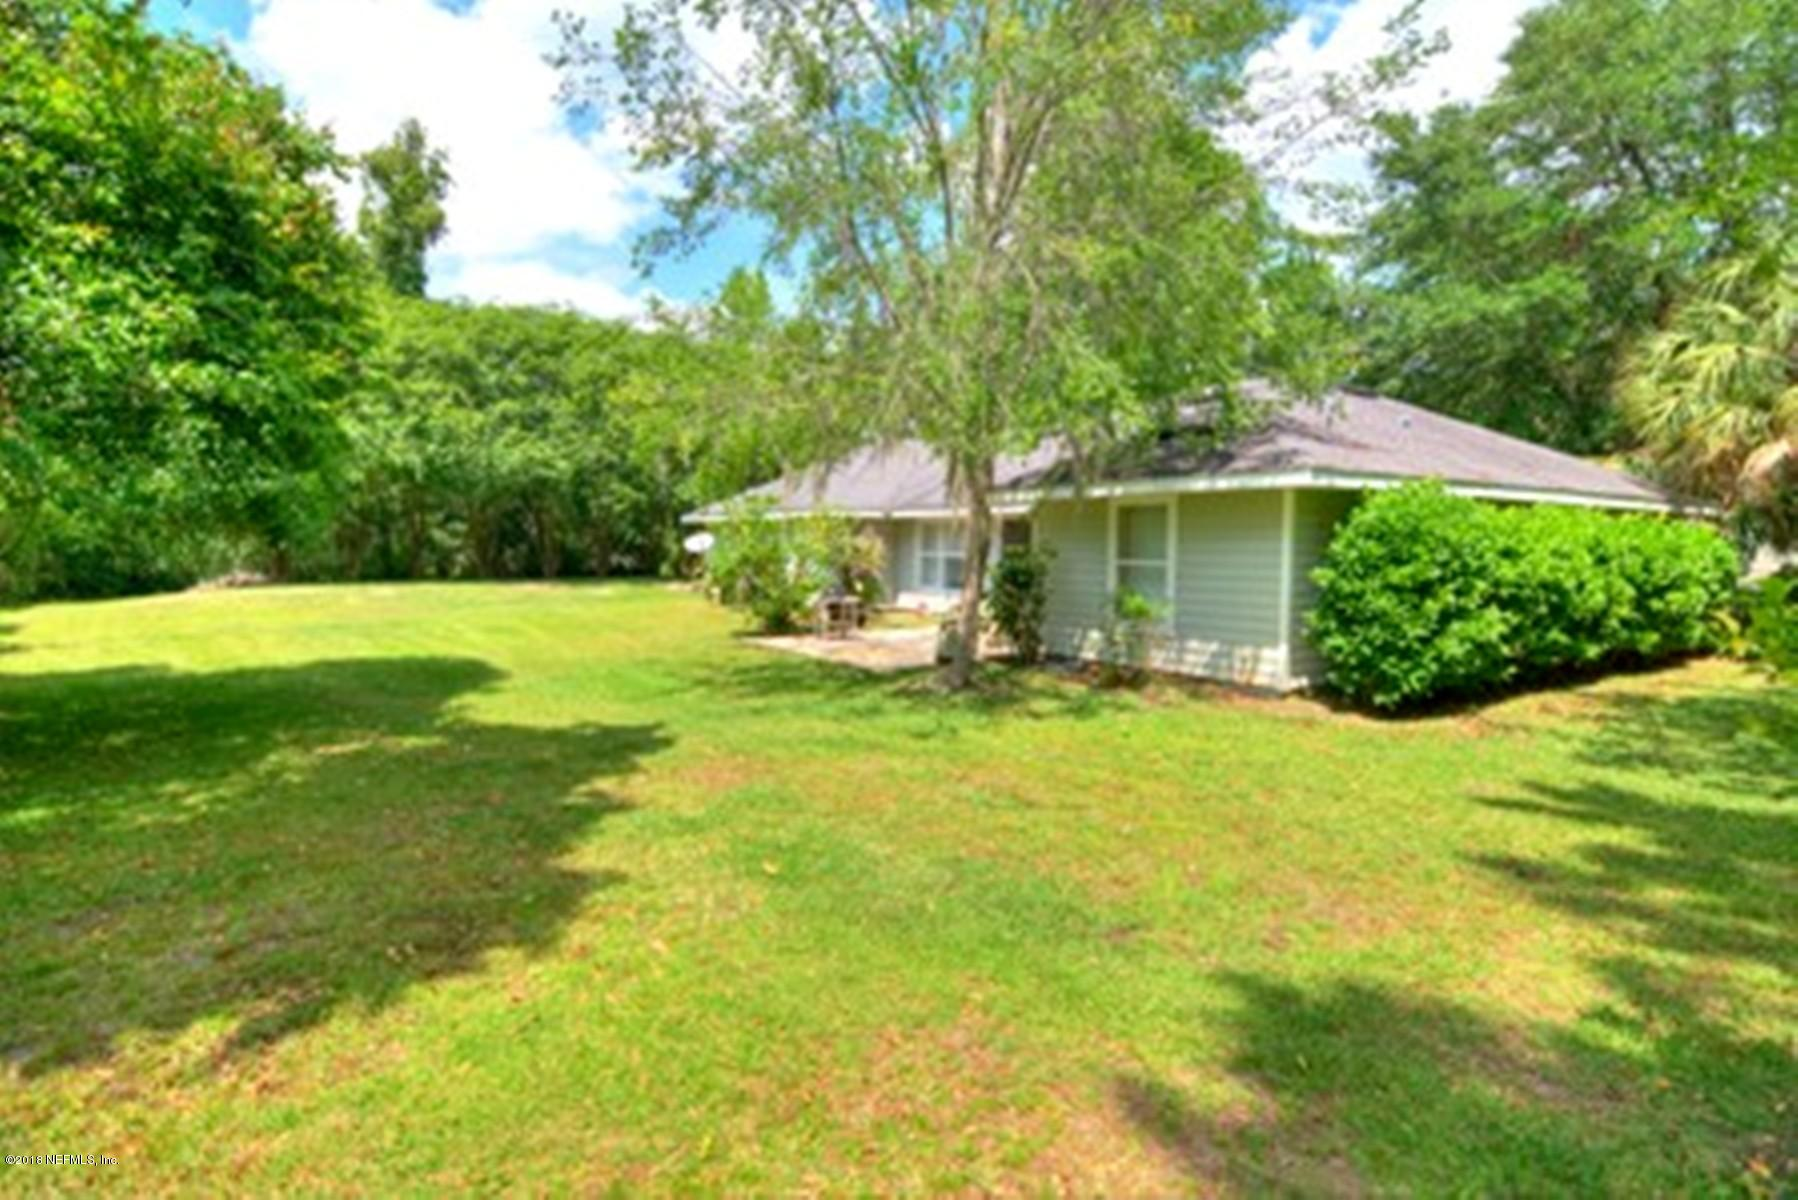 11608 208TH, EARLTON, FLORIDA 32631, 3 Bedrooms Bedrooms, ,2 BathroomsBathrooms,Residential - single family,For sale,208TH,937075